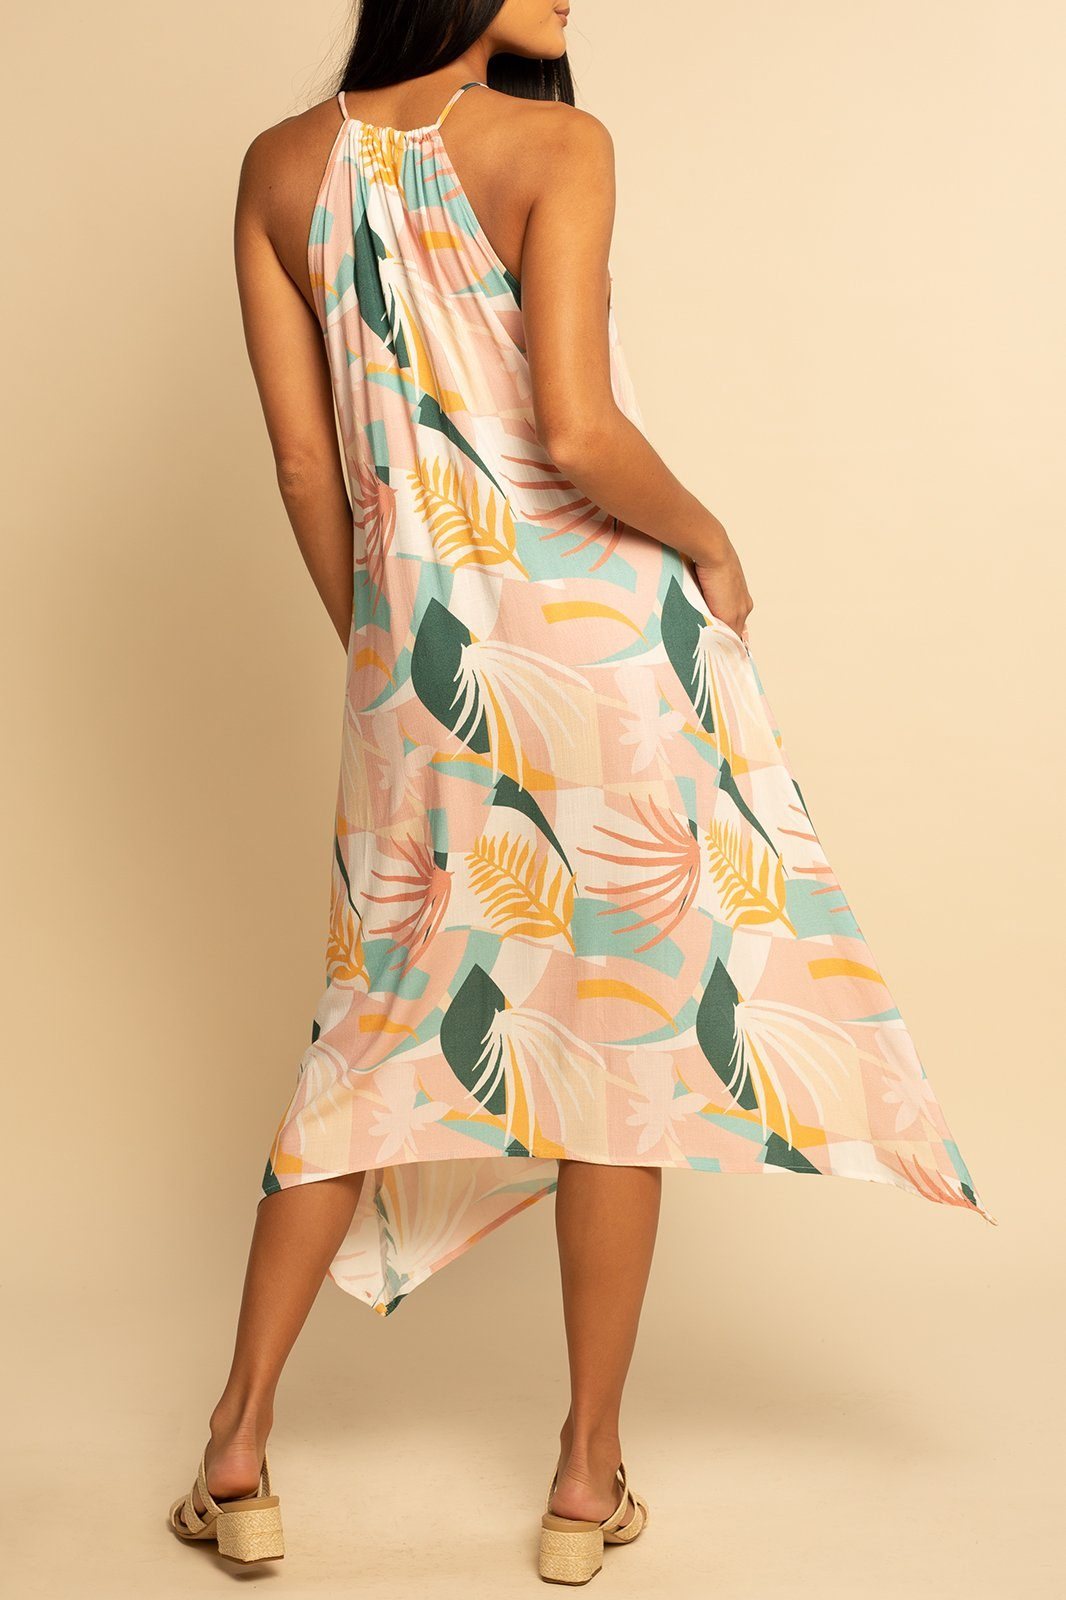 Tahiti Tie Dress - Palm Beach - Shore